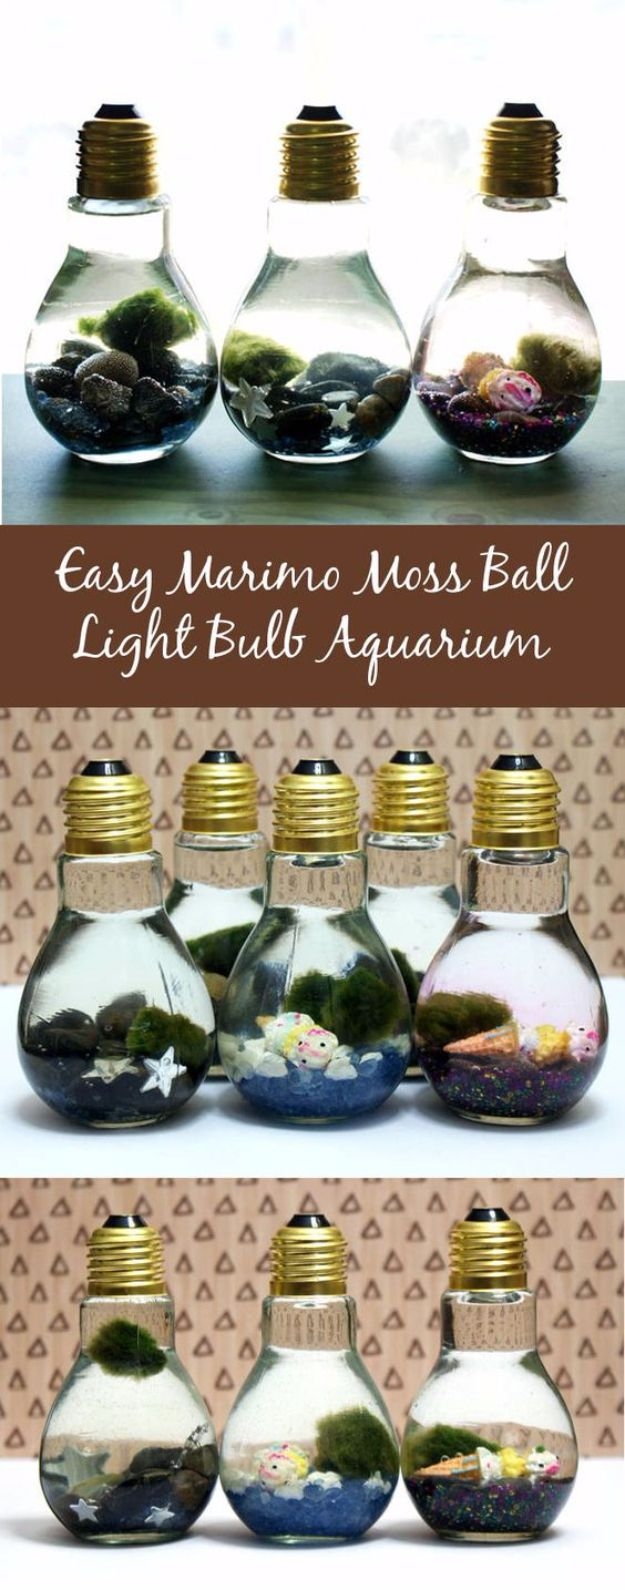 41 of the easiest diys ever marimo moss ball simple for Diy project ideas to sell